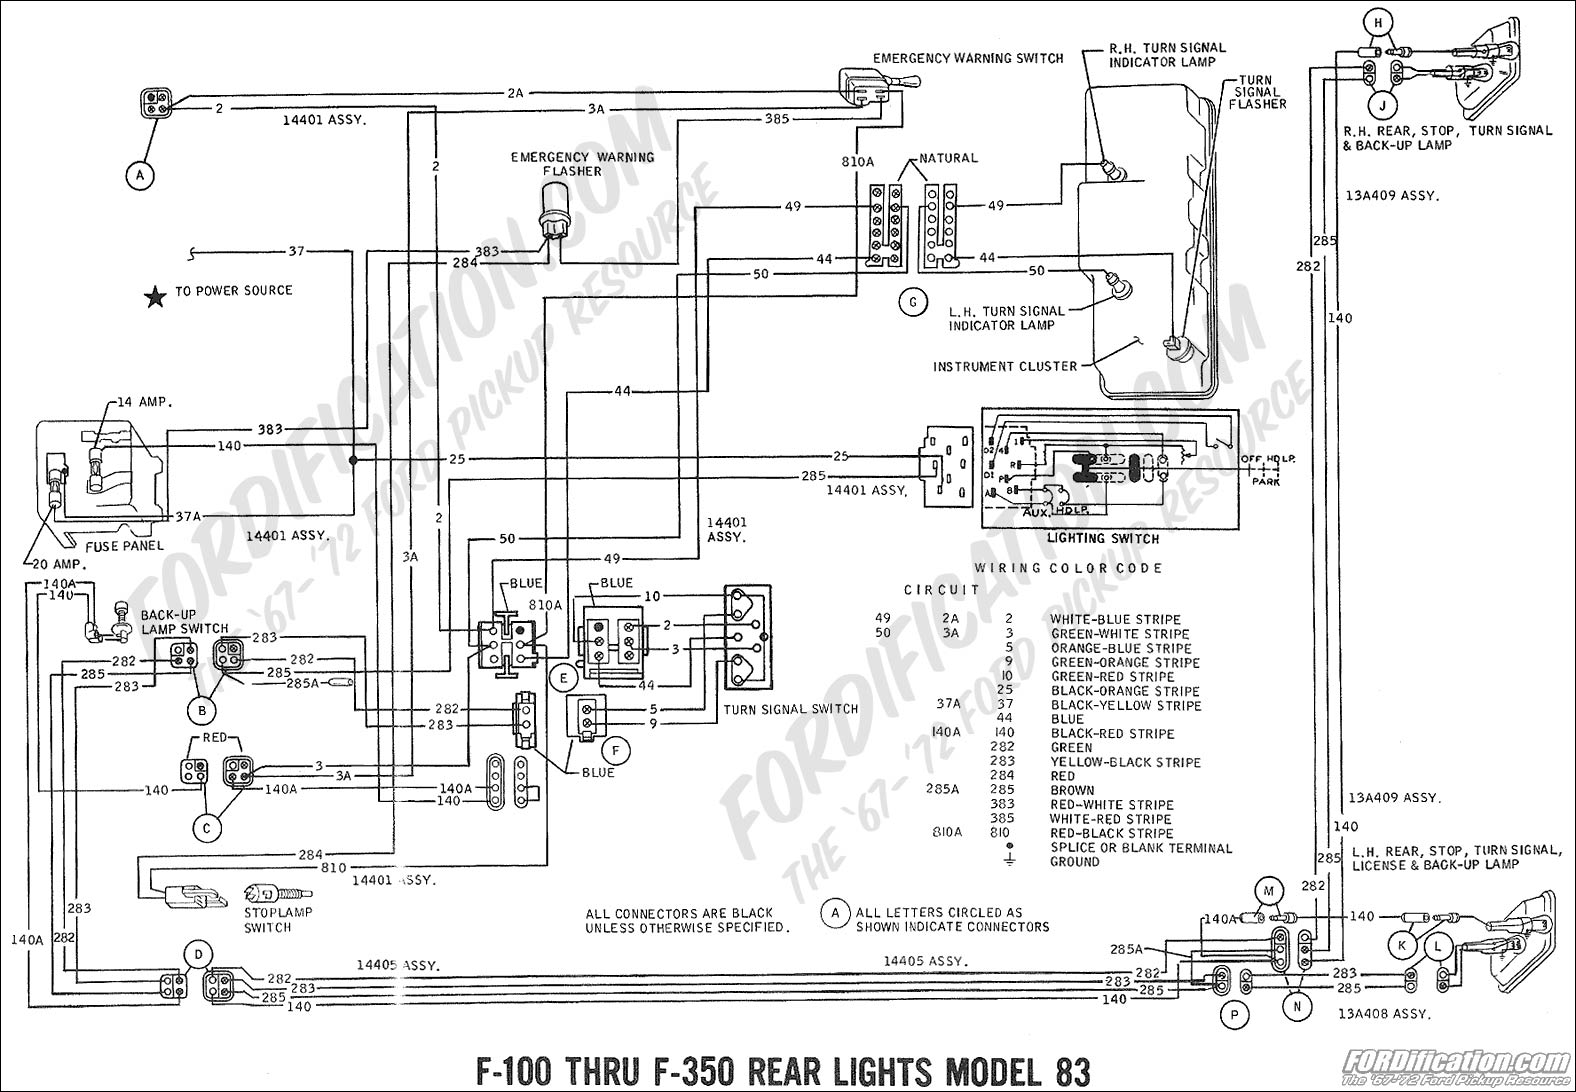 2001hyundai Tiburon Low Beam Wiring Schematic moreover 1968 Mustang Wiring Diagram Vacuum Schematics as well WiringByColor moreover Volvo Vnl Headlight Wiring Diagram likewise Kubota Fuel Solenoid Wiring Diagram. on circuit panel box wiring diagram